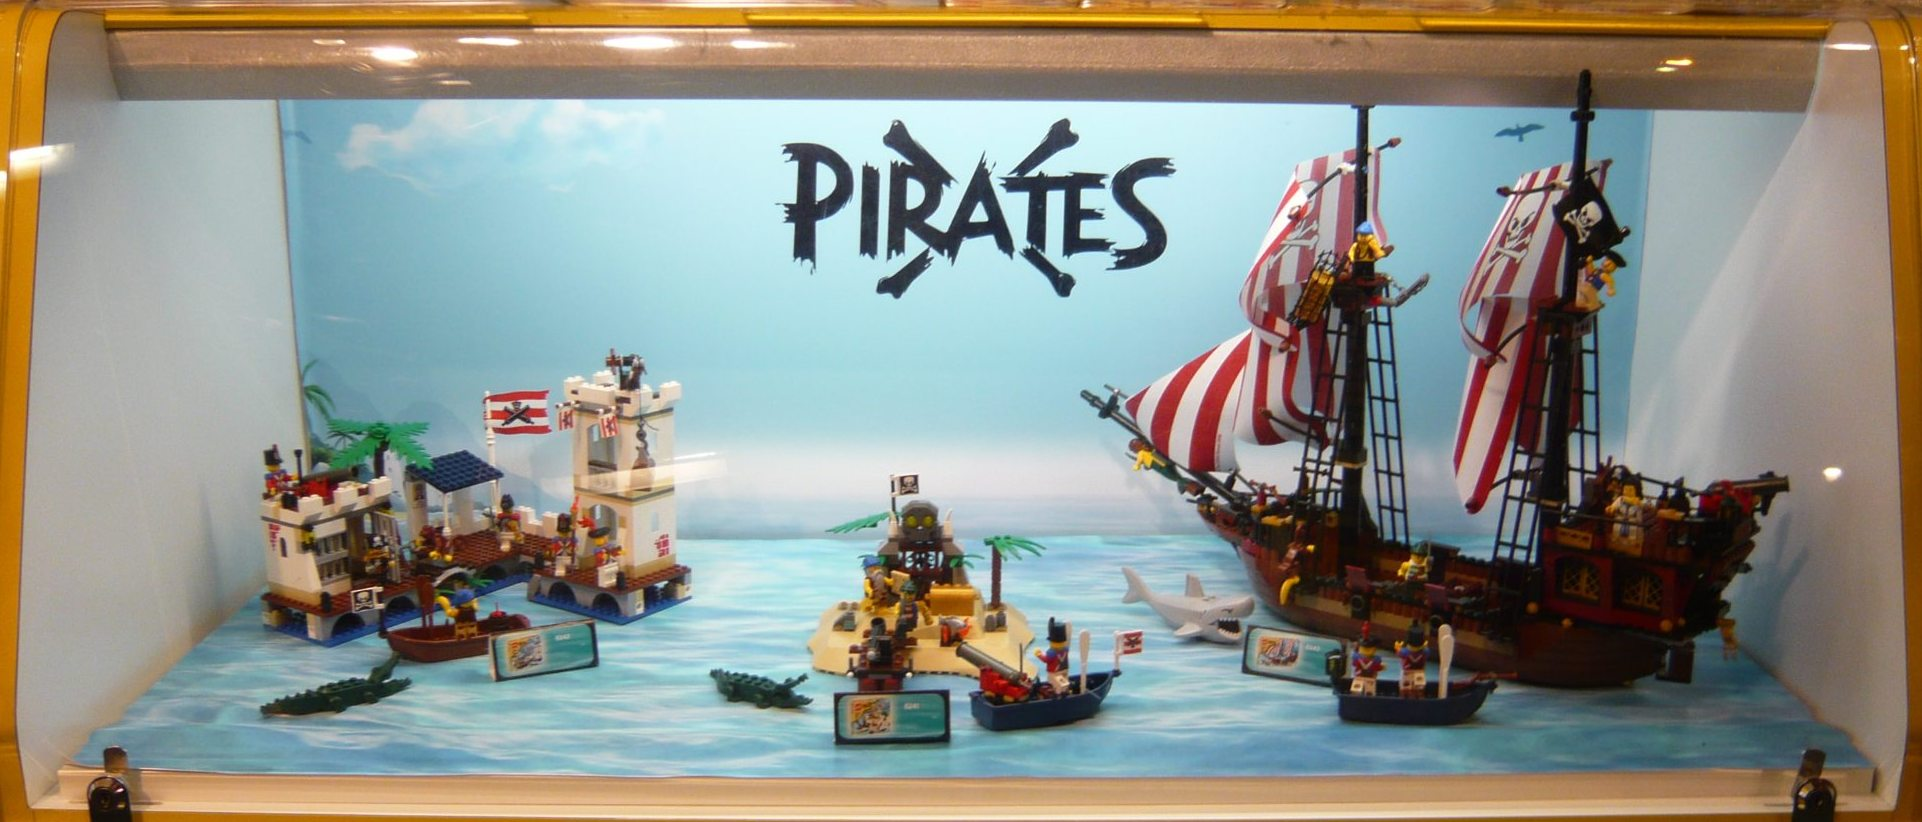 6_d_lego_pirates_sets_a1.jpg